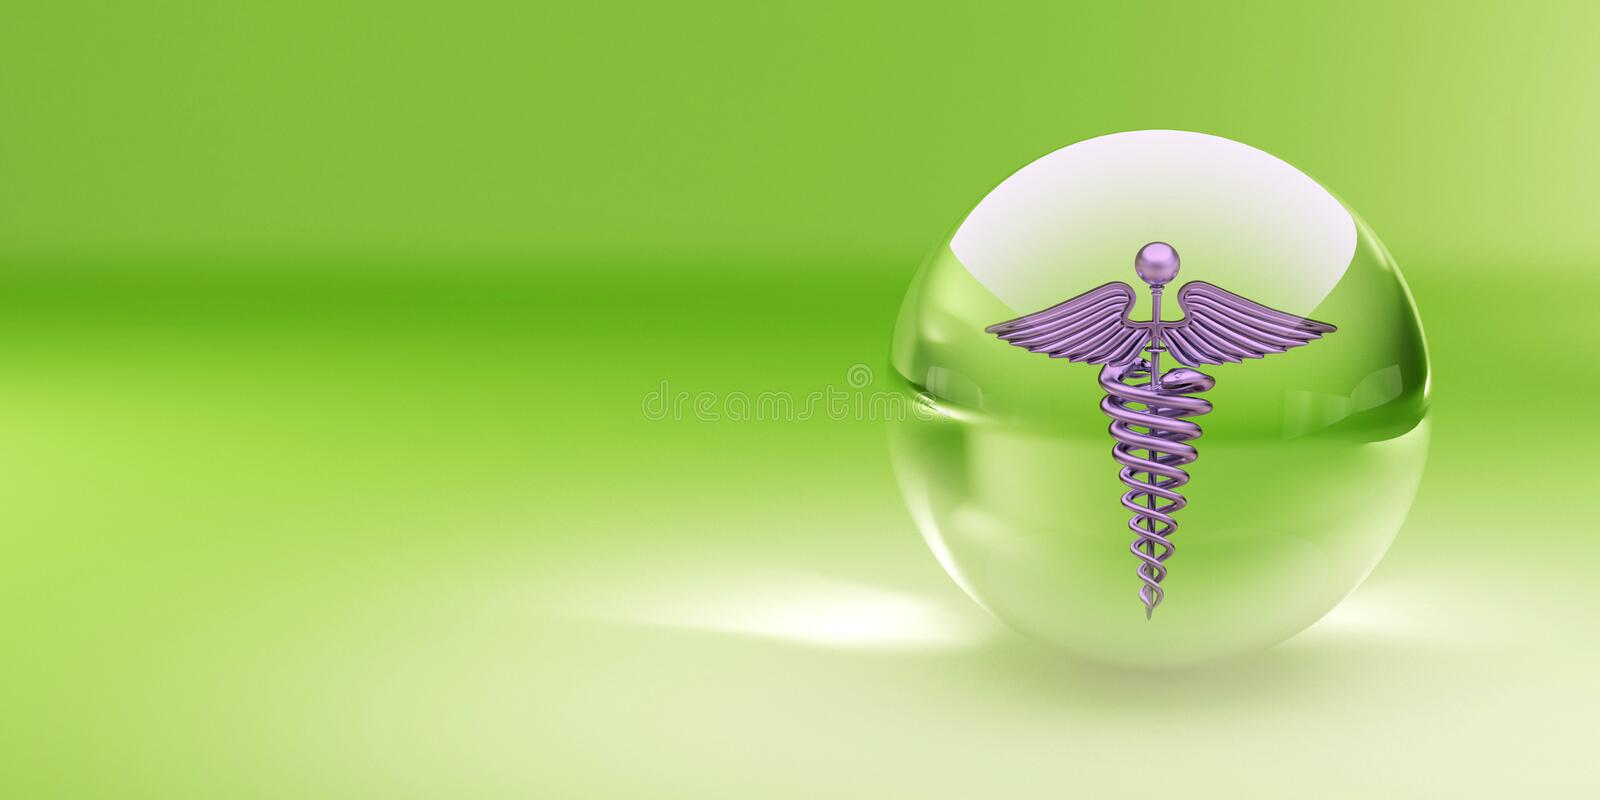 Symbol of medicine in glass sphere royalty free illustration